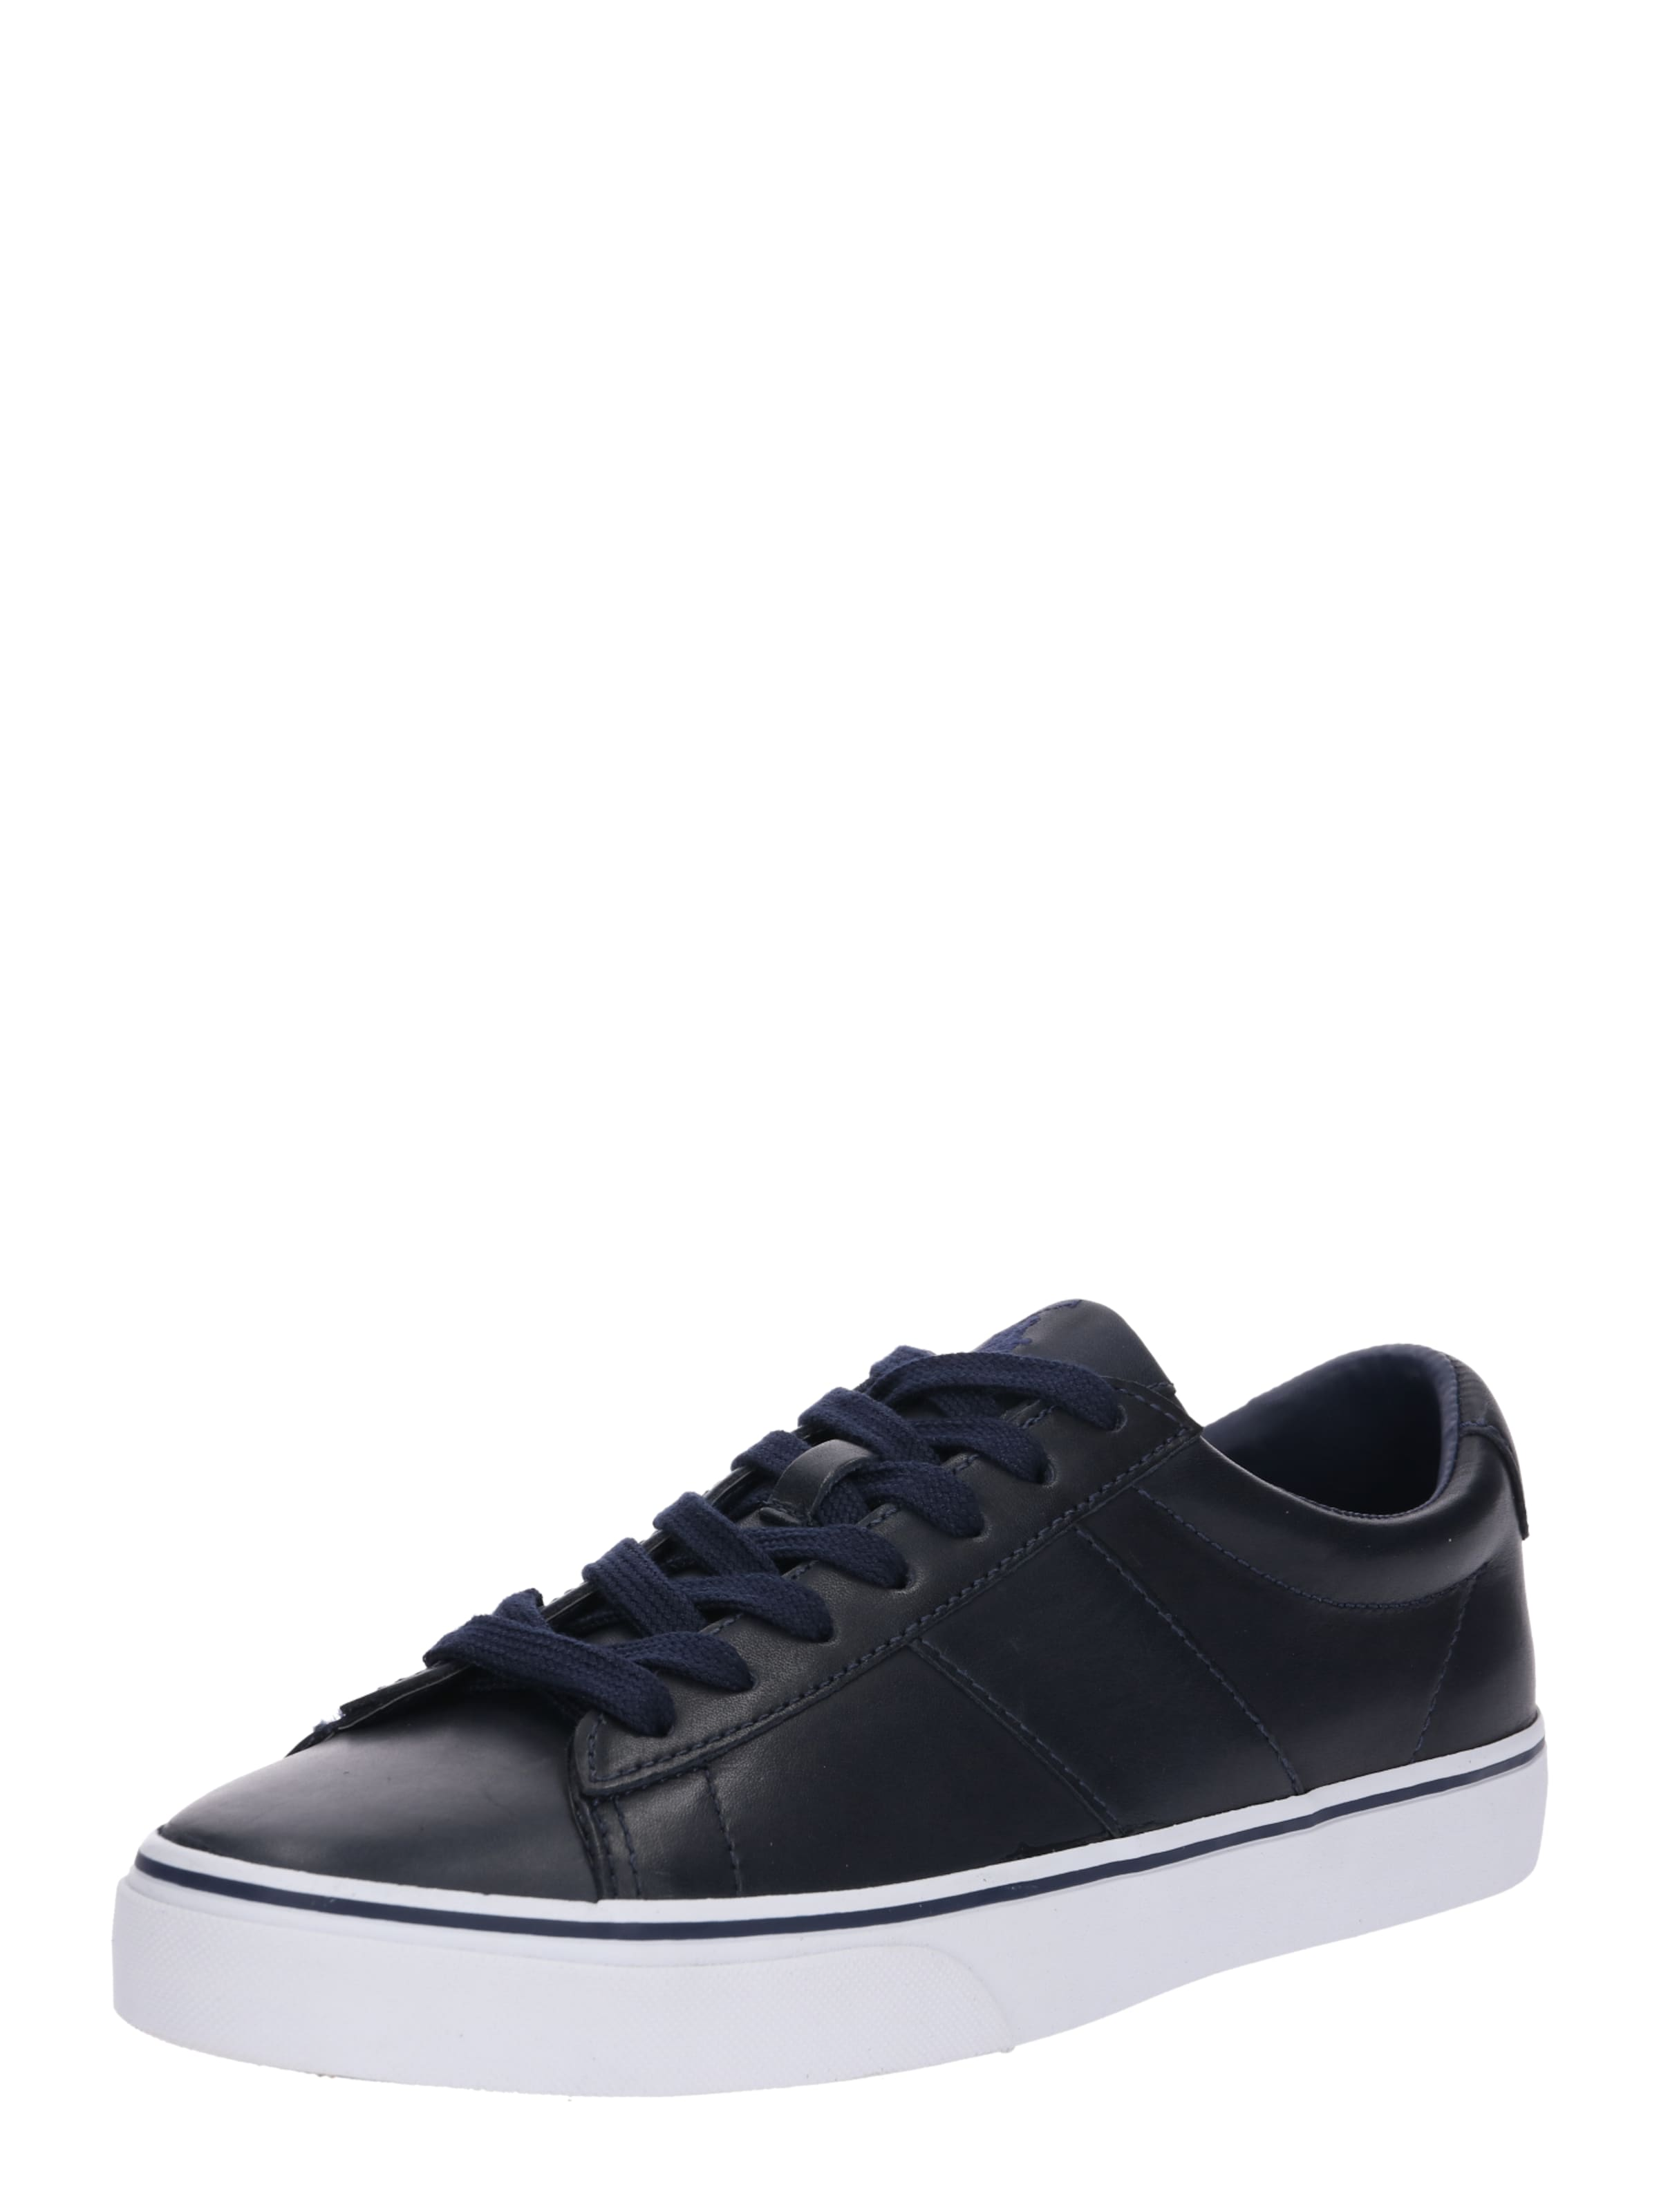 Polo Lauren 'sayer Nachtblau In Leather' Sneaker Ralph Jl13uTKcF